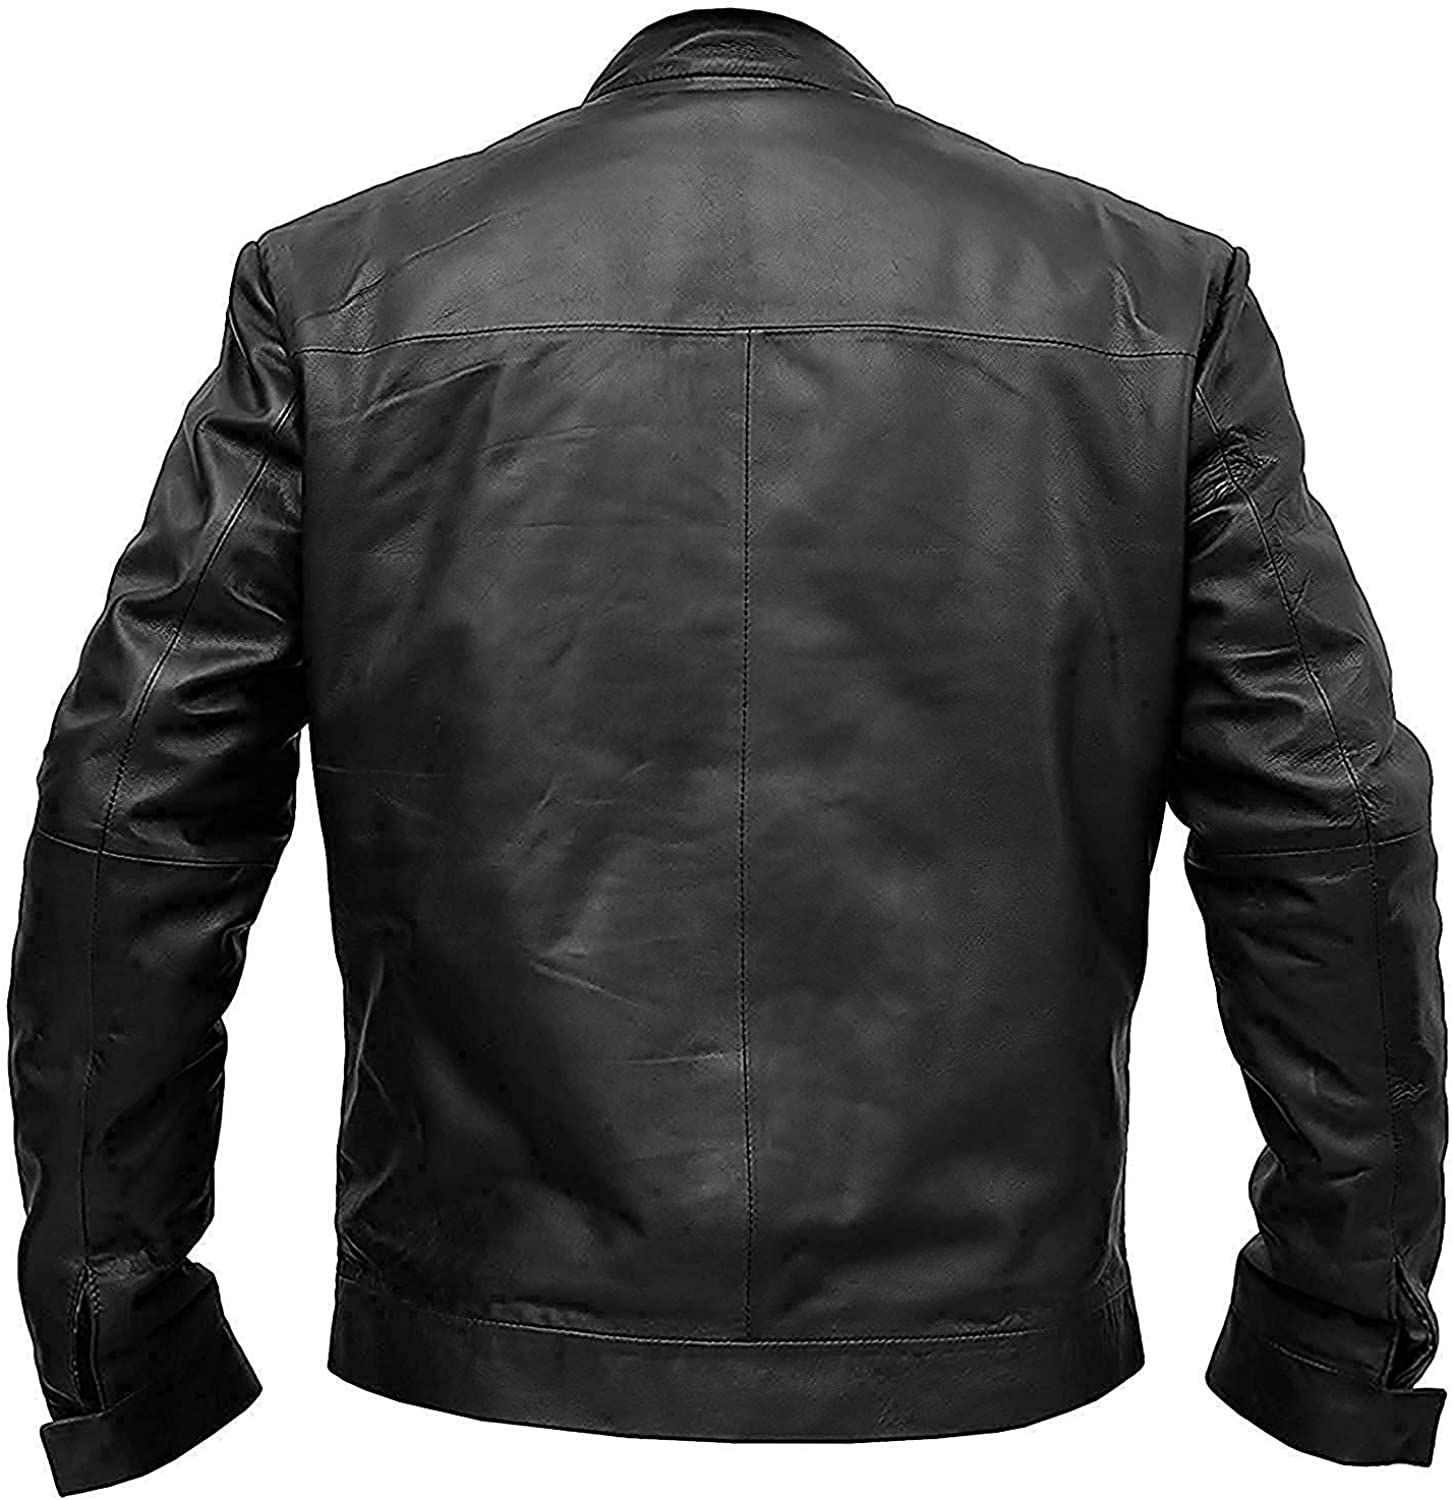 Mens Tom Cruise Mission Impossible 6 Ethan Hunt Black Real Leather Jacket